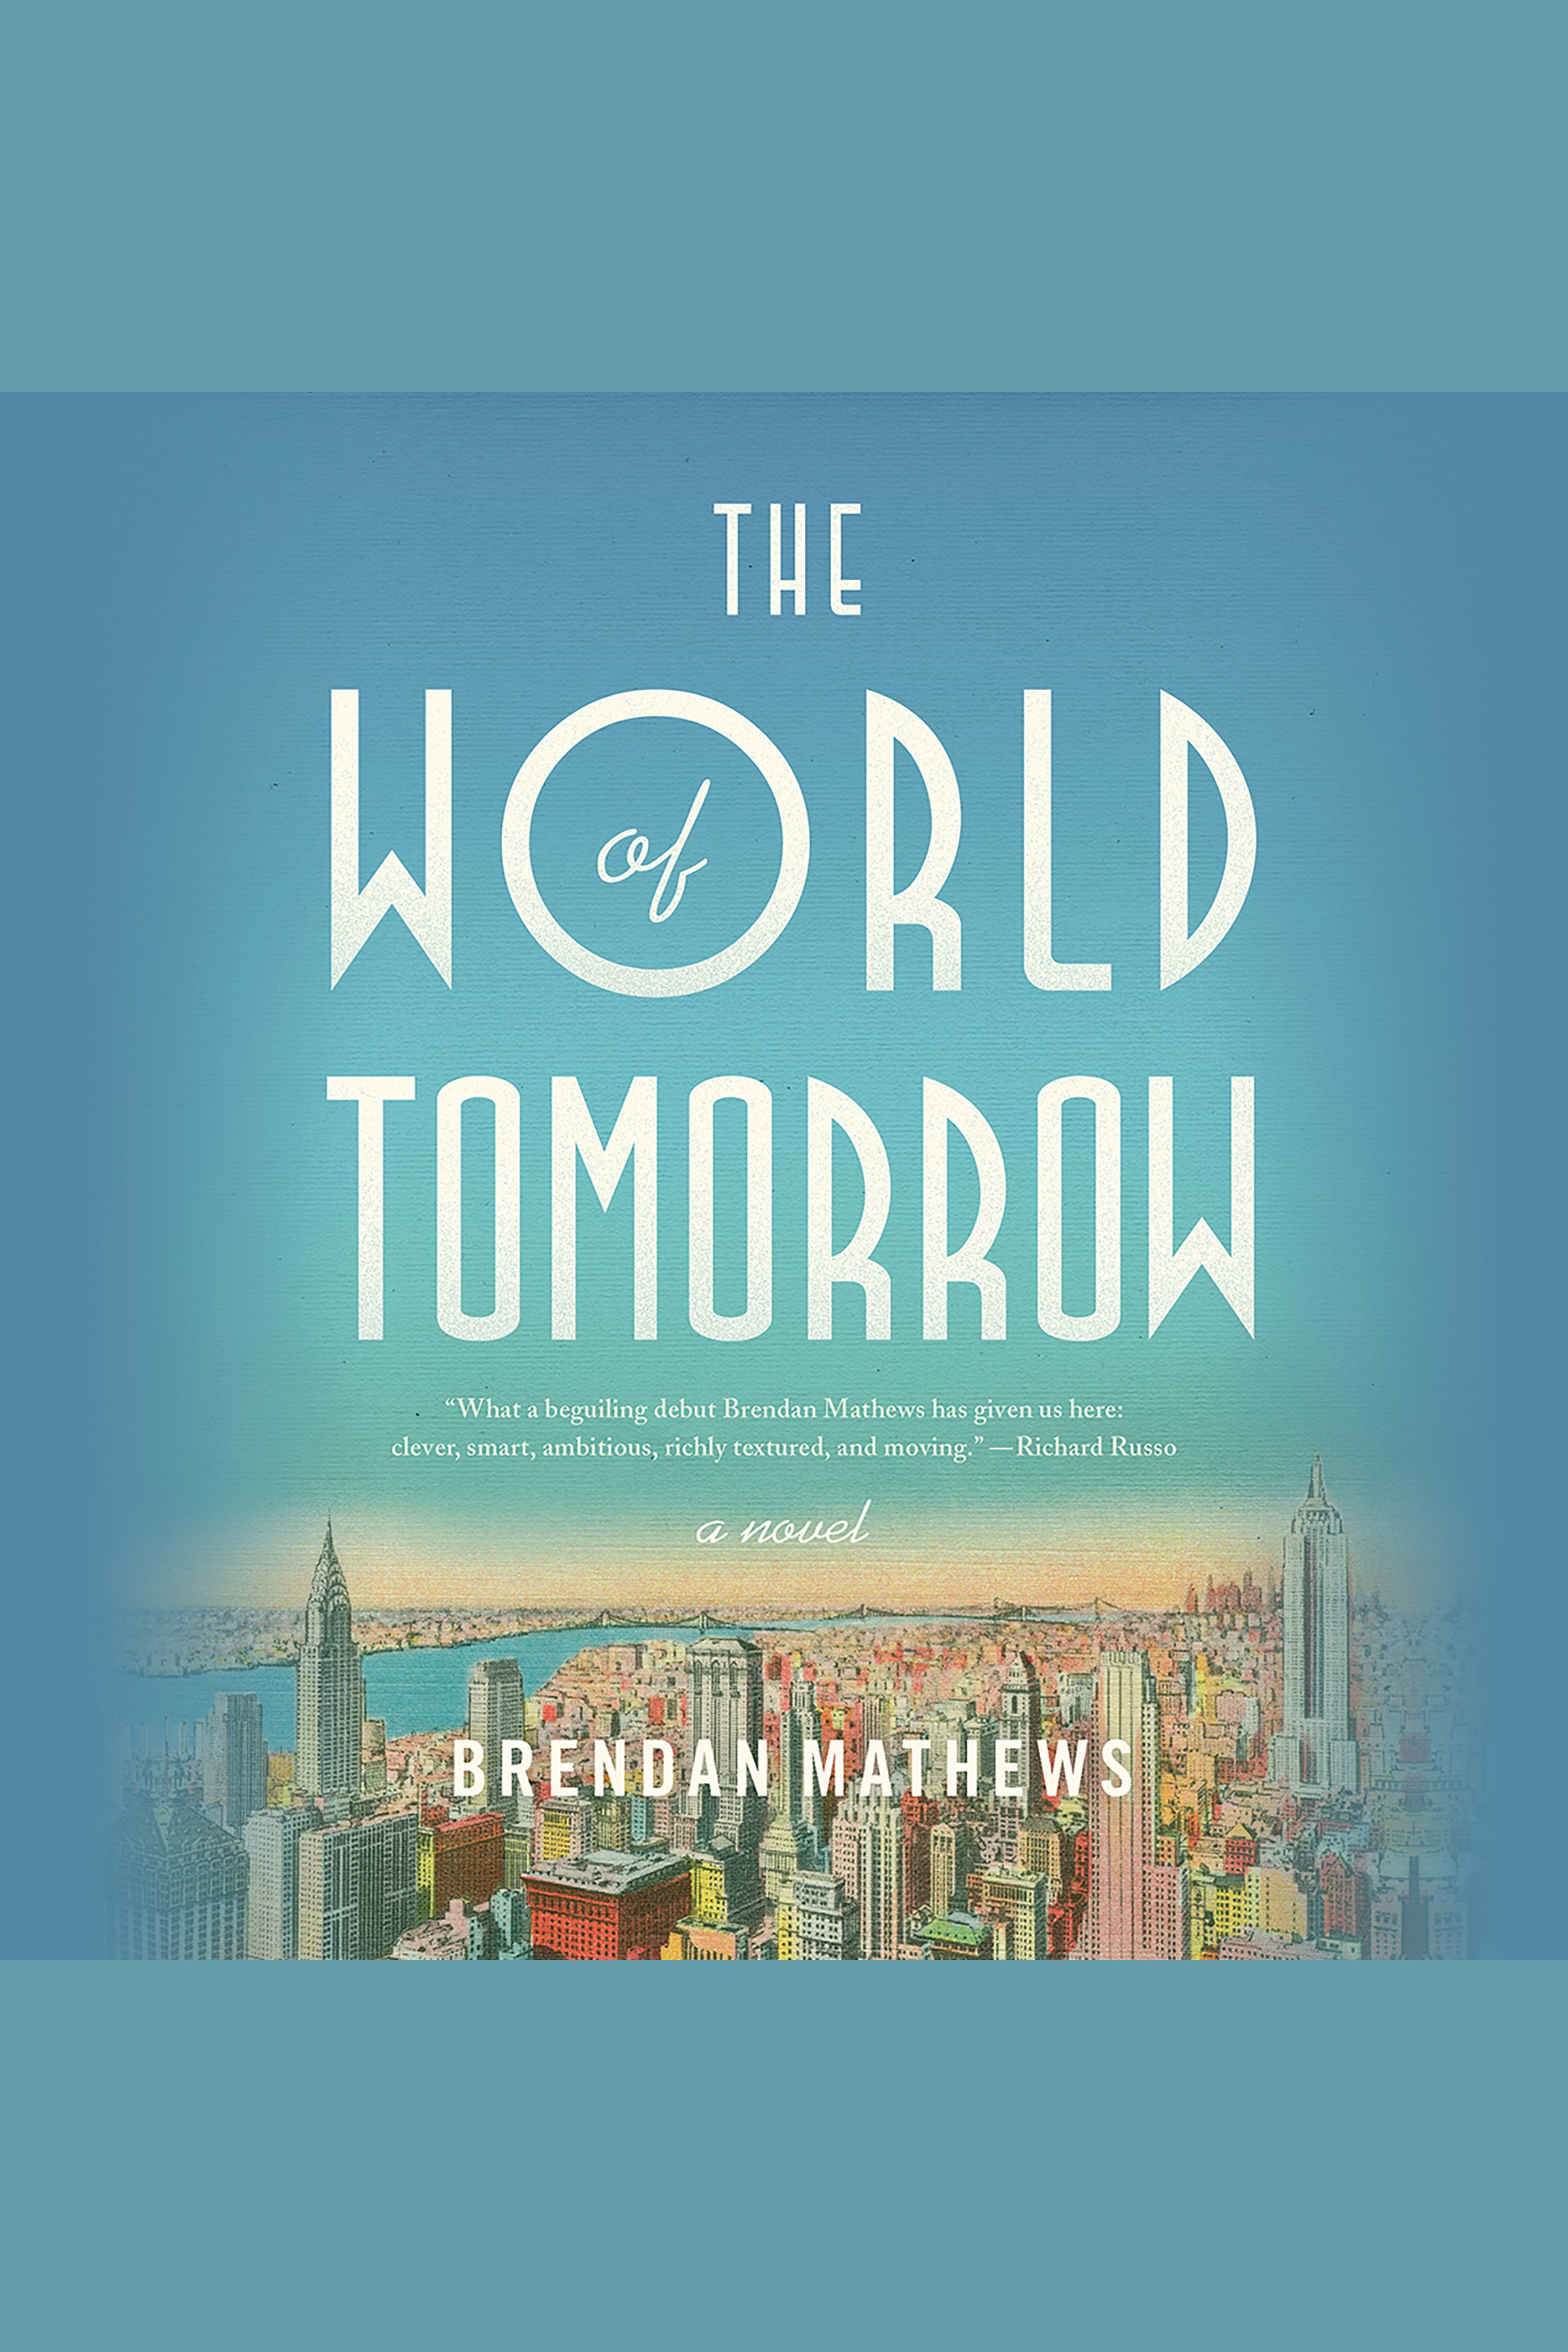 The world of tomorrow cover image